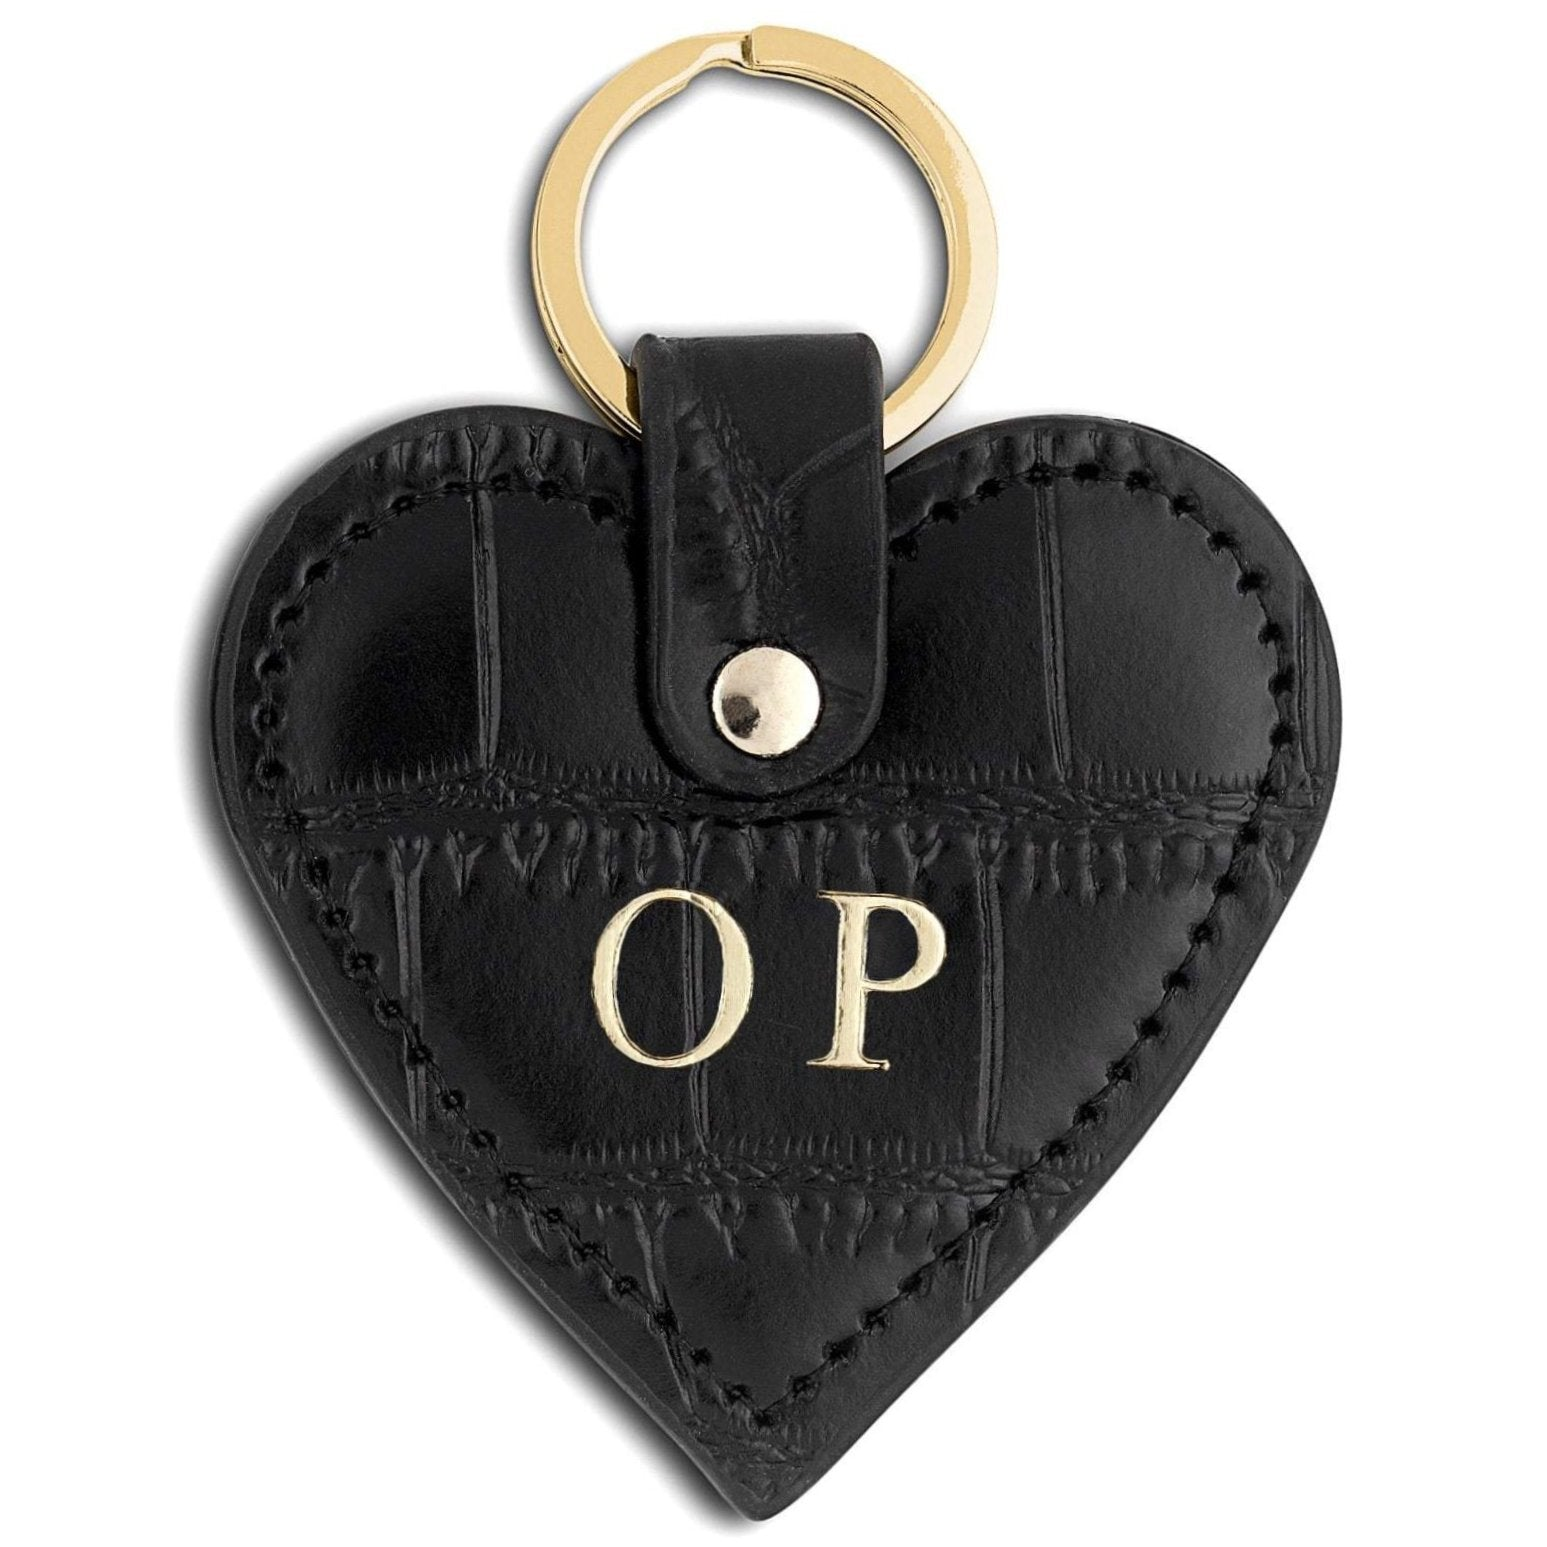 Personalised Black Croc Leather Heart Key Ring